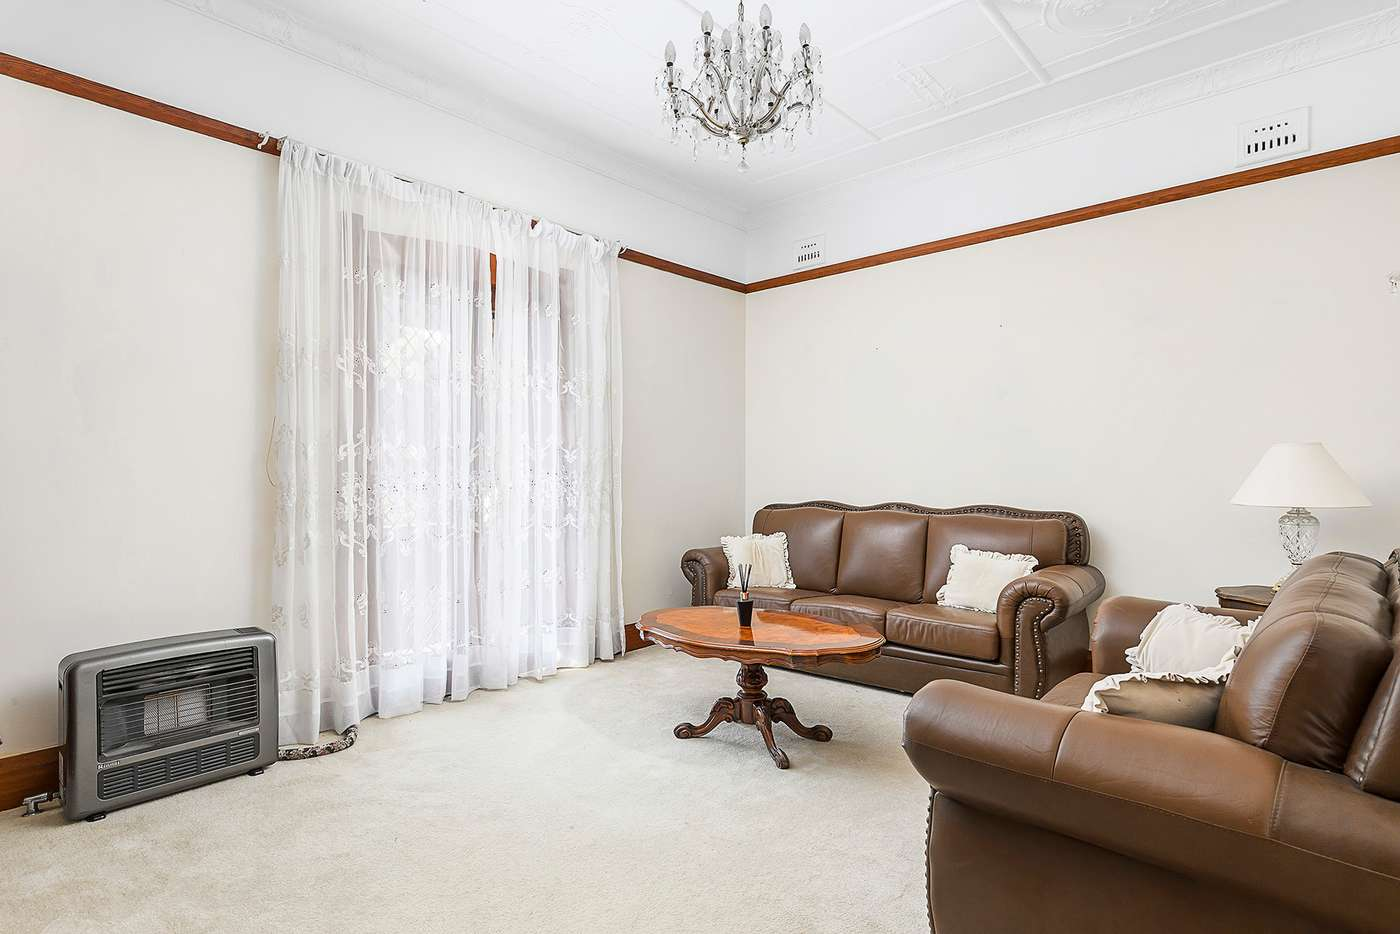 Sixth view of Homely house listing, 49 Walton Crescent, Abbotsford NSW 2046